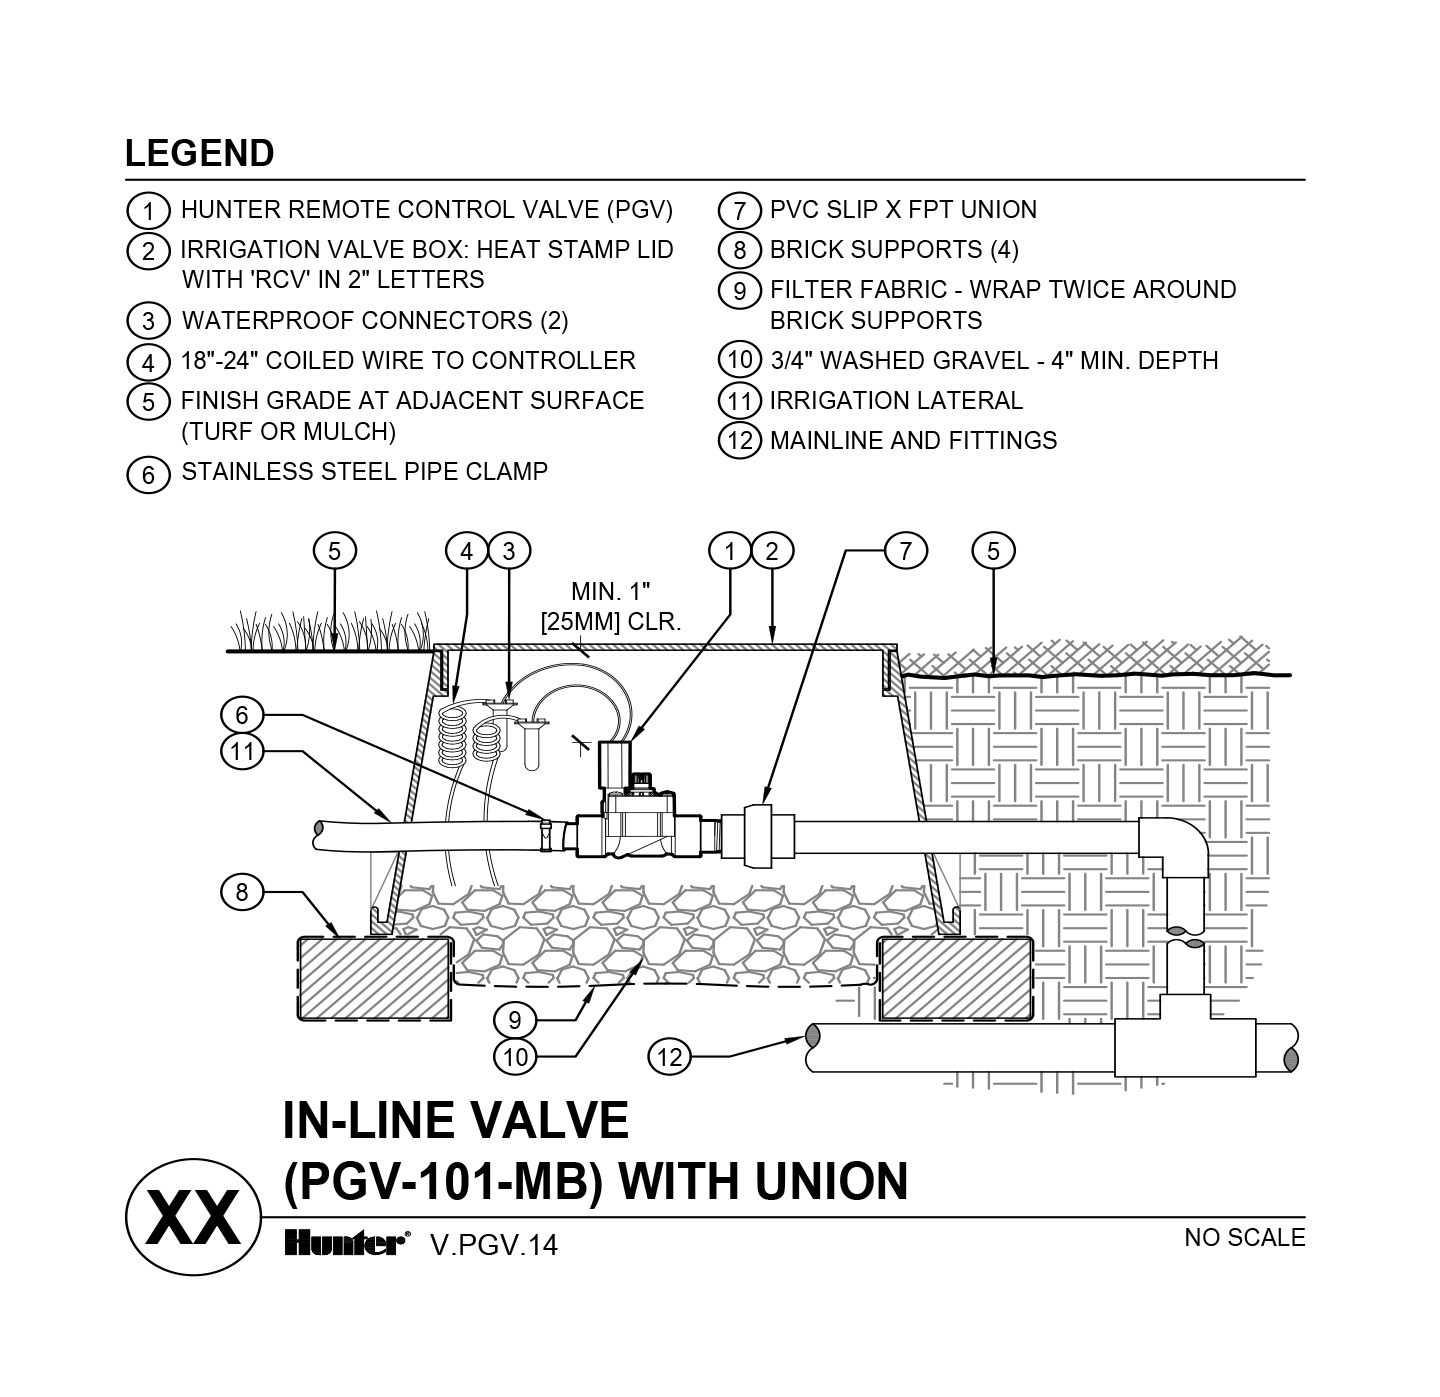 hight resolution of cad pgv 101 mb with unions